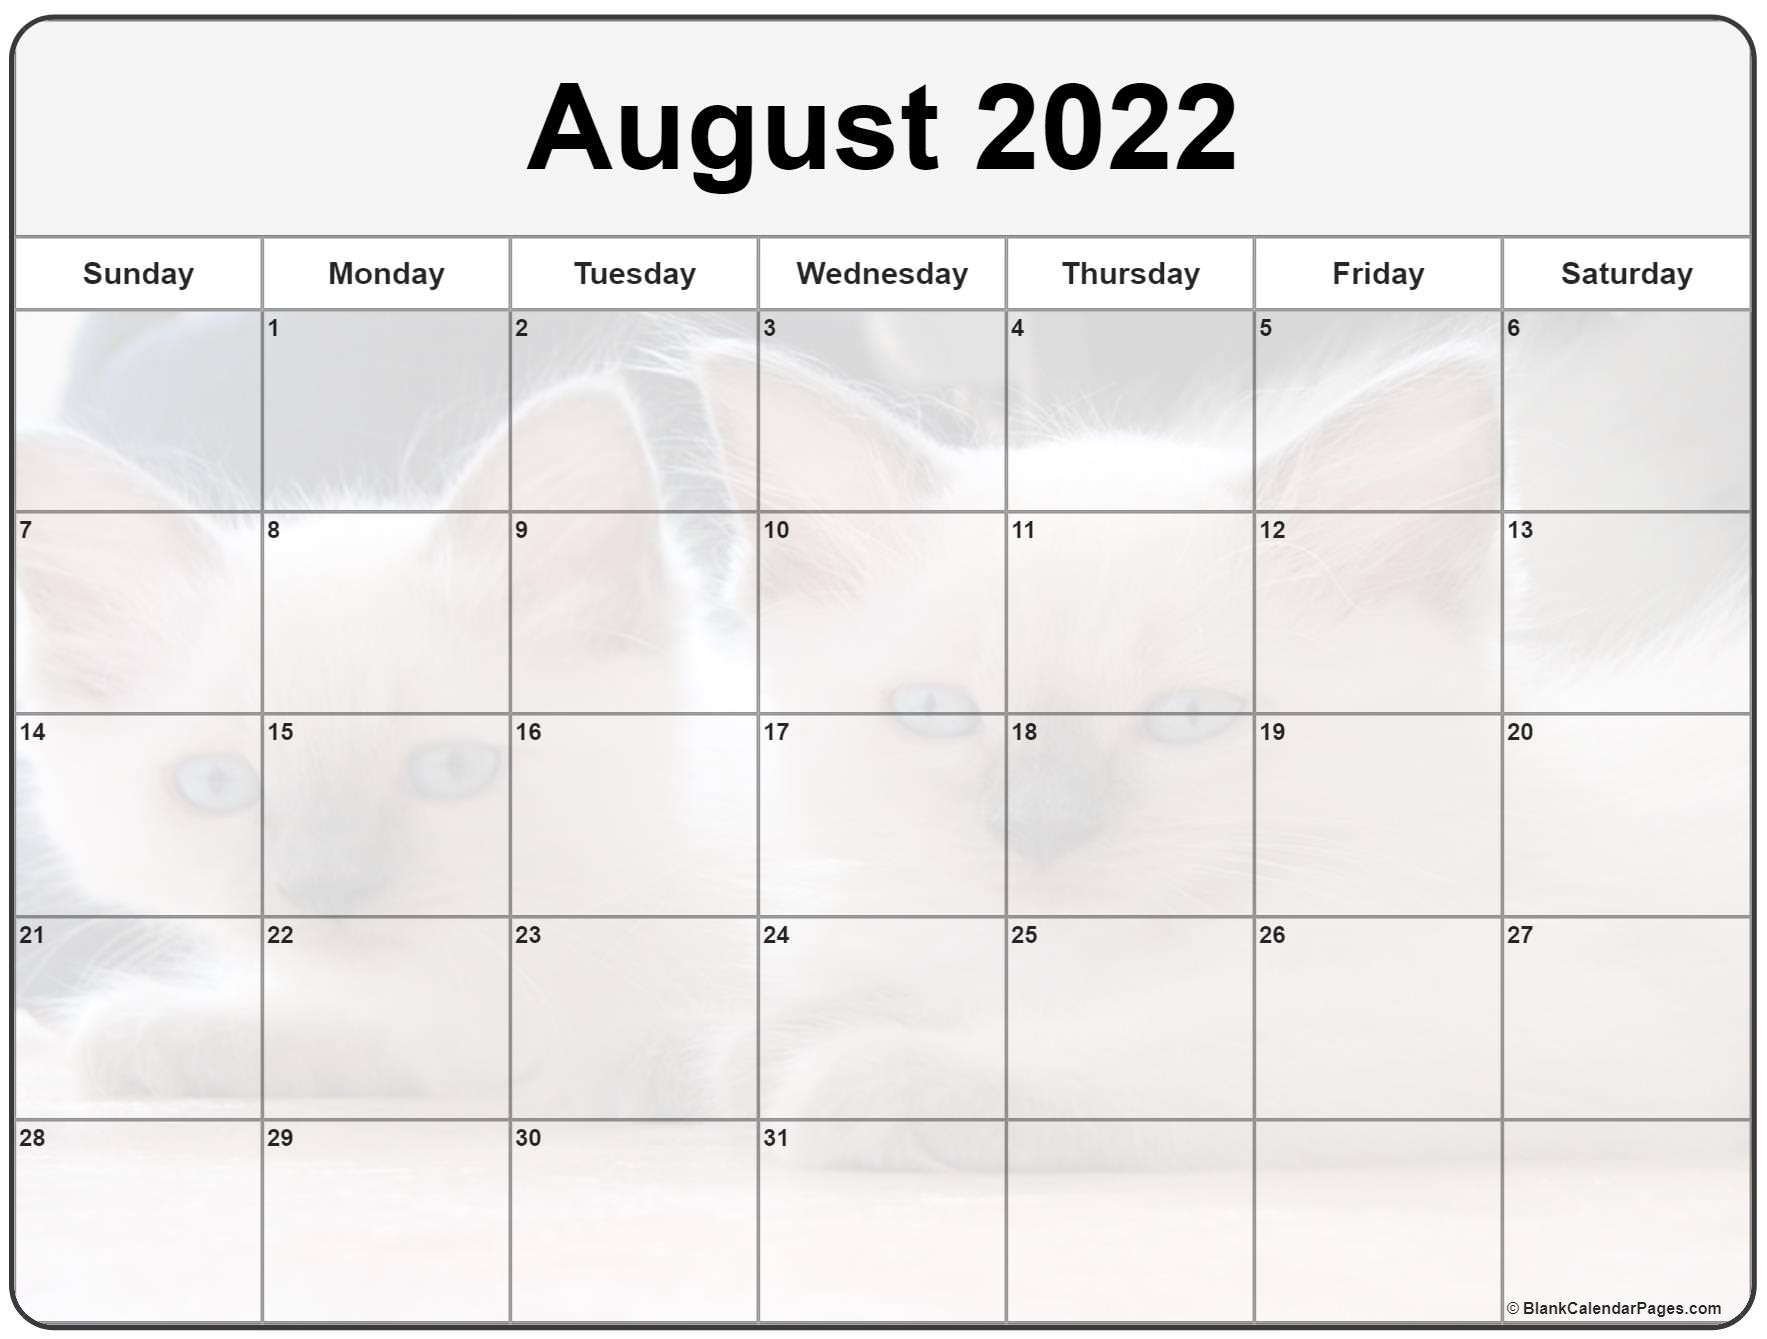 Collection Of August 2022 Photo Calendars With Image Filters.